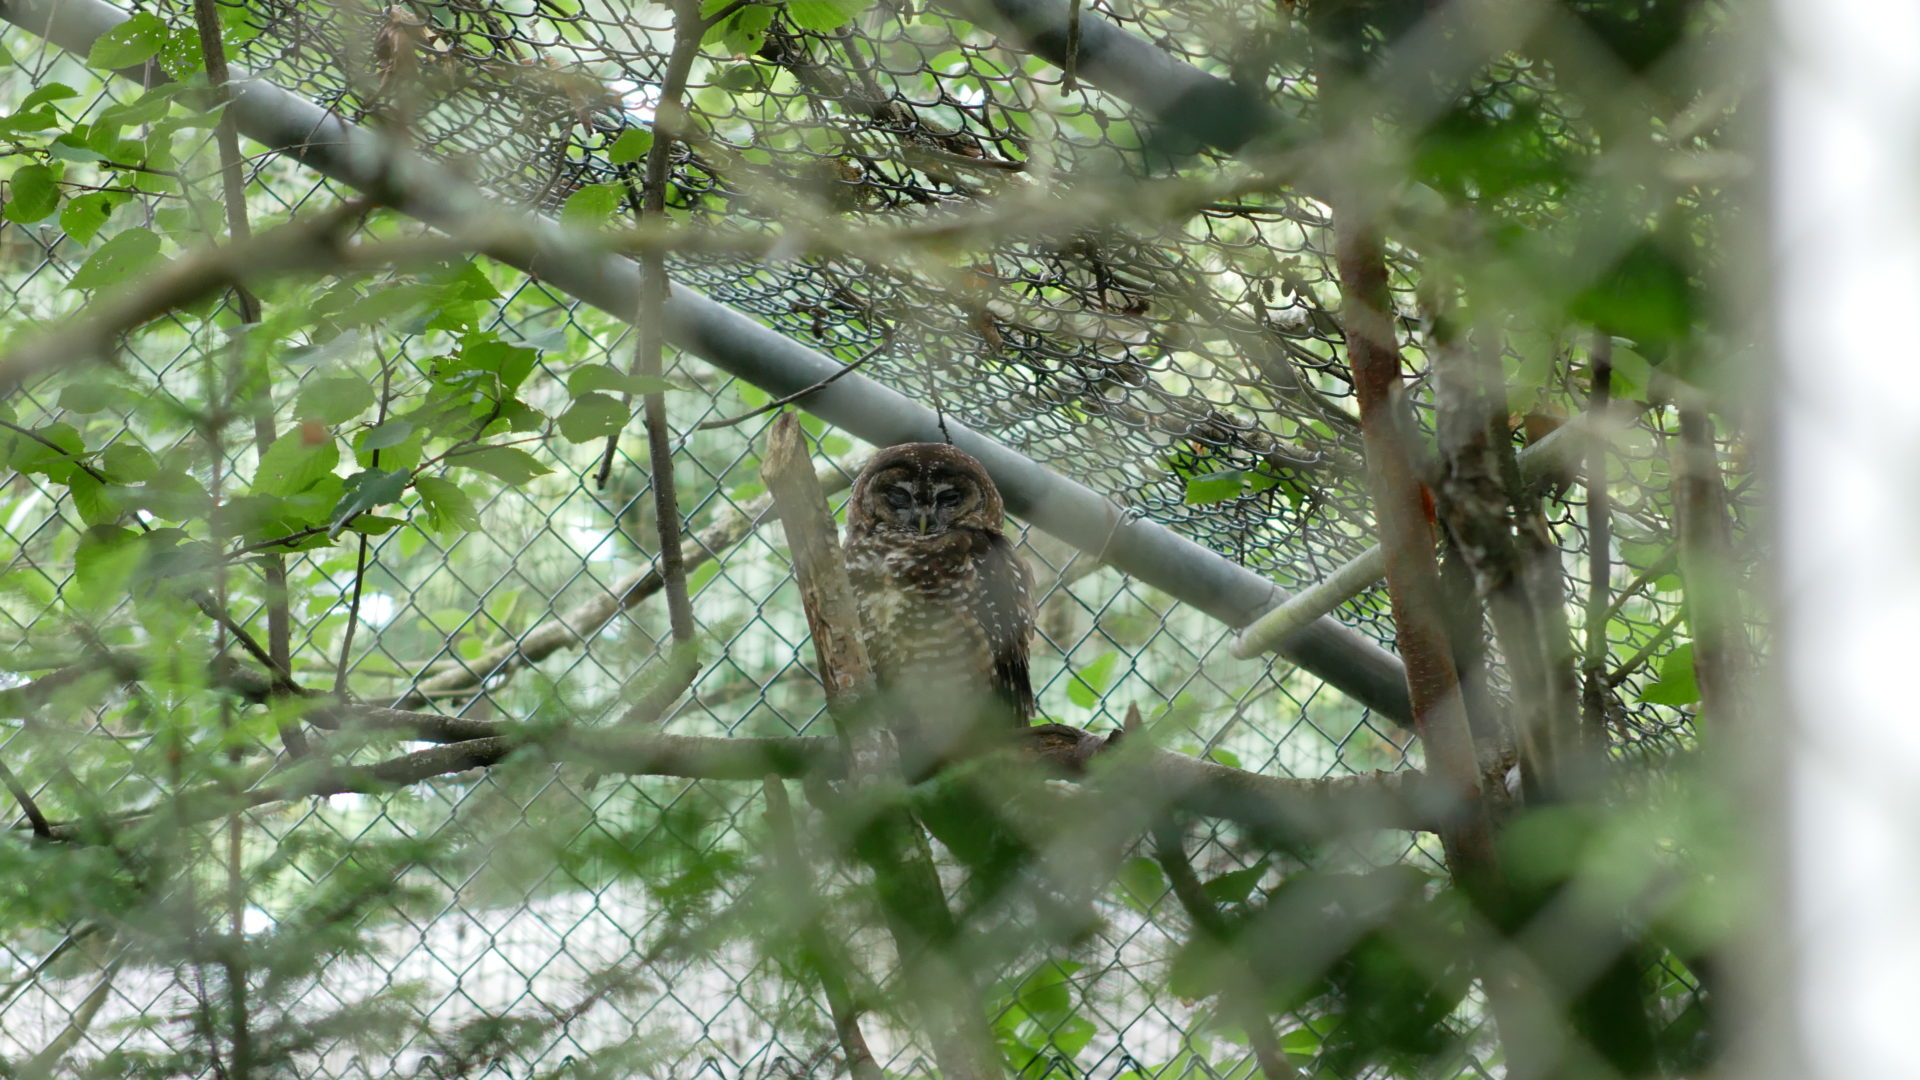 Oregon, a northern spotted owl, in his aviary at the breeding facility. Photo: Carol Linnitt / The Narwhal